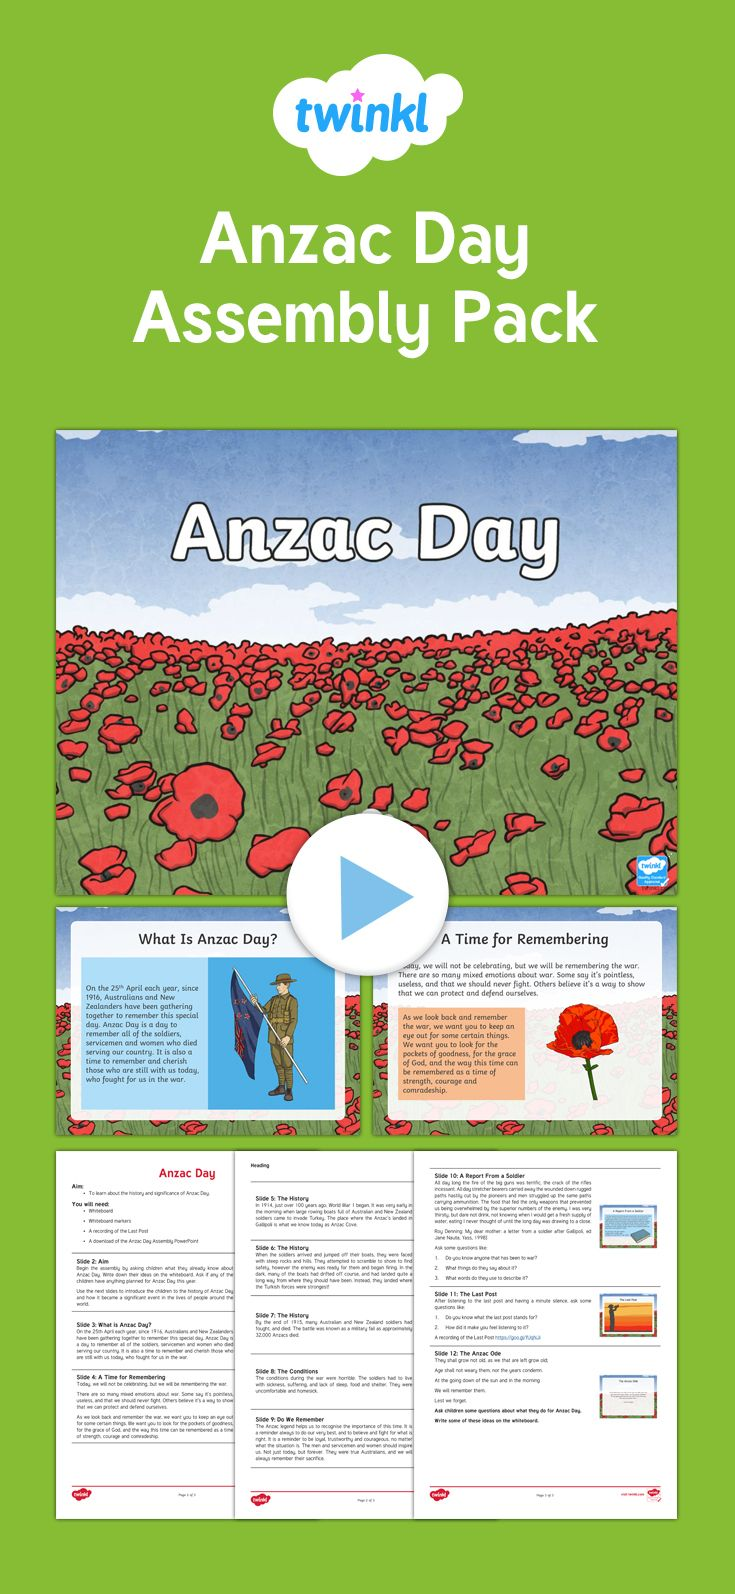 A brilliant resource to support an assembly on the history, significance, and time to remember our Australia and New Zealand soldiers on Anzac Day.